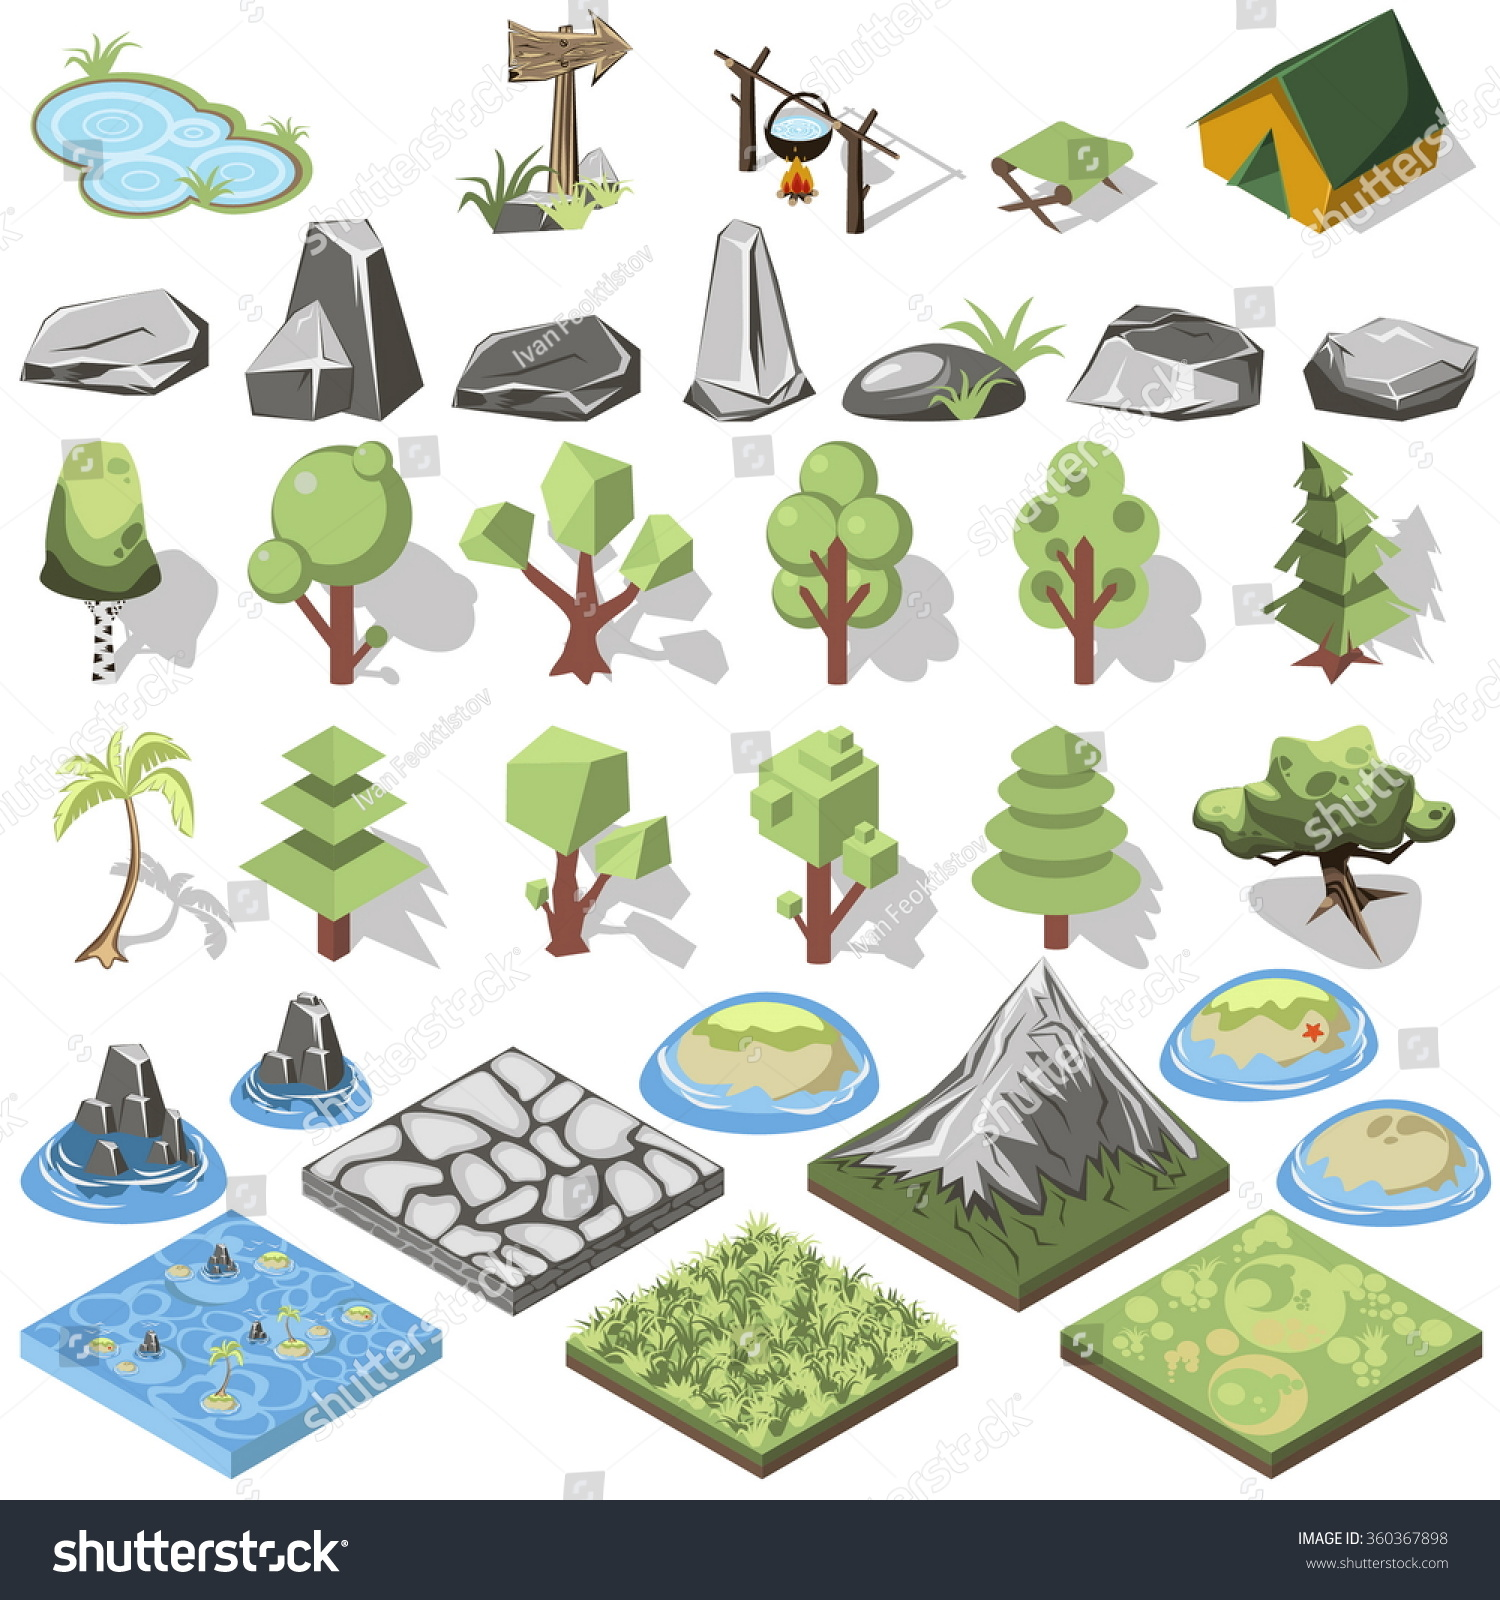 More similar stock images of 3d landscape with fall tree - Isometric 3d Forest Camping Elements For Landscape Design Tent And Camp Tree Rock